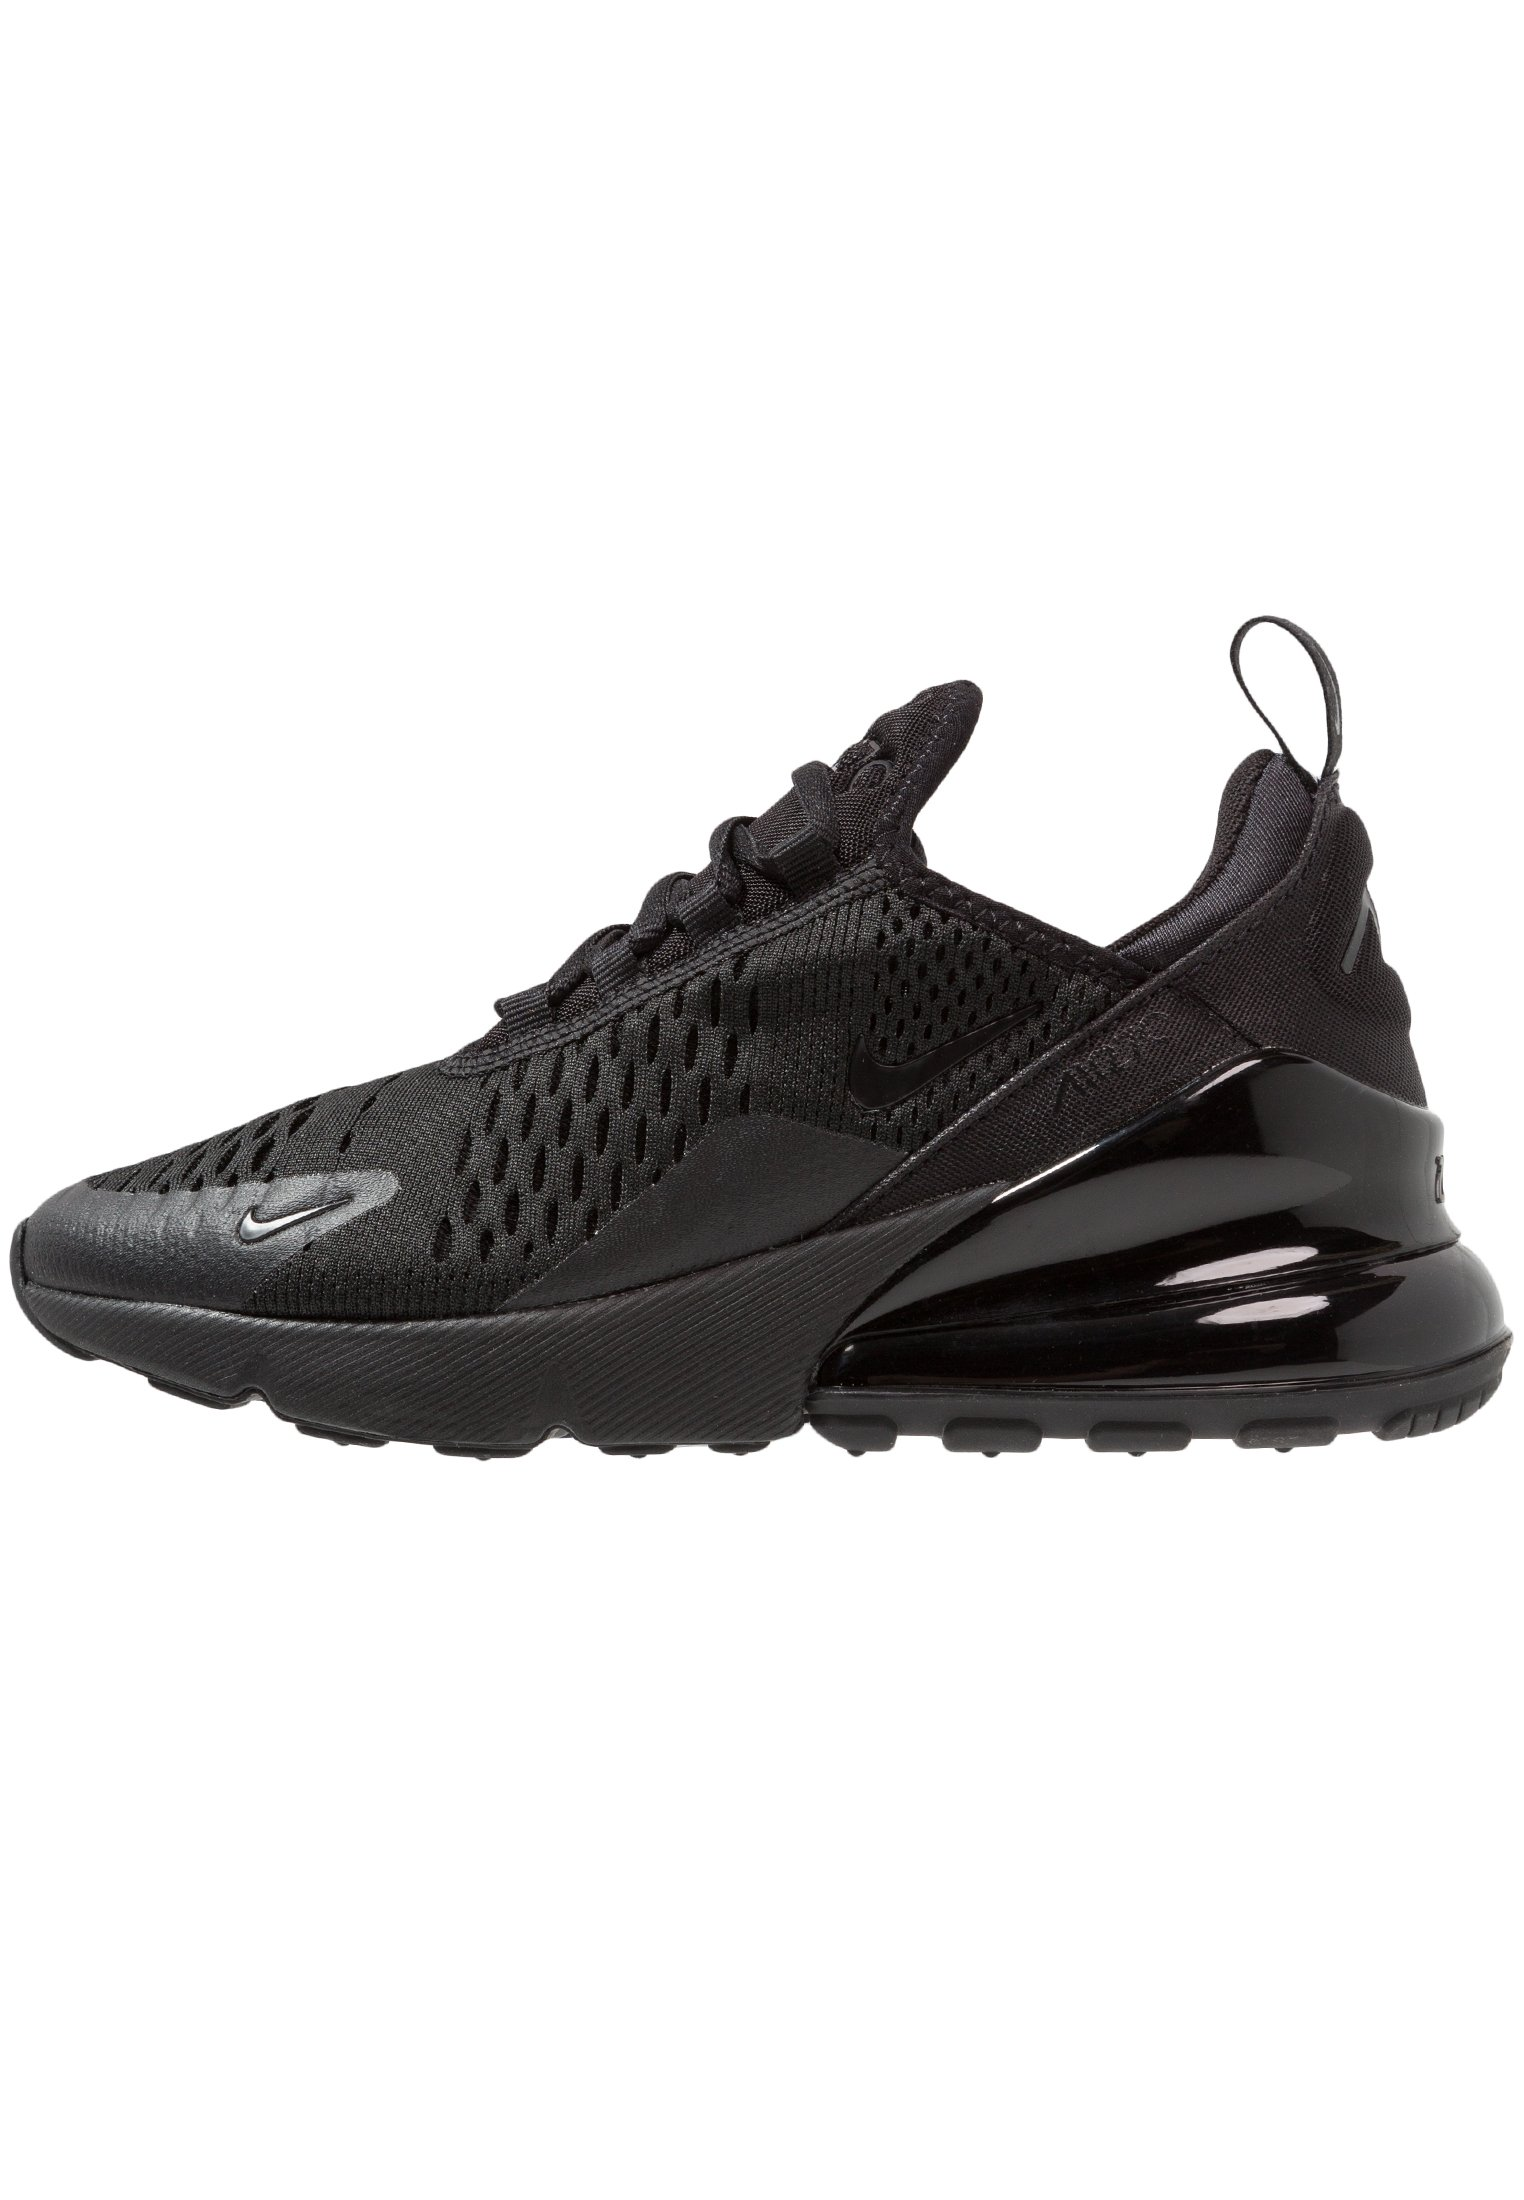 AIR MAX 270 Sneakers laag black